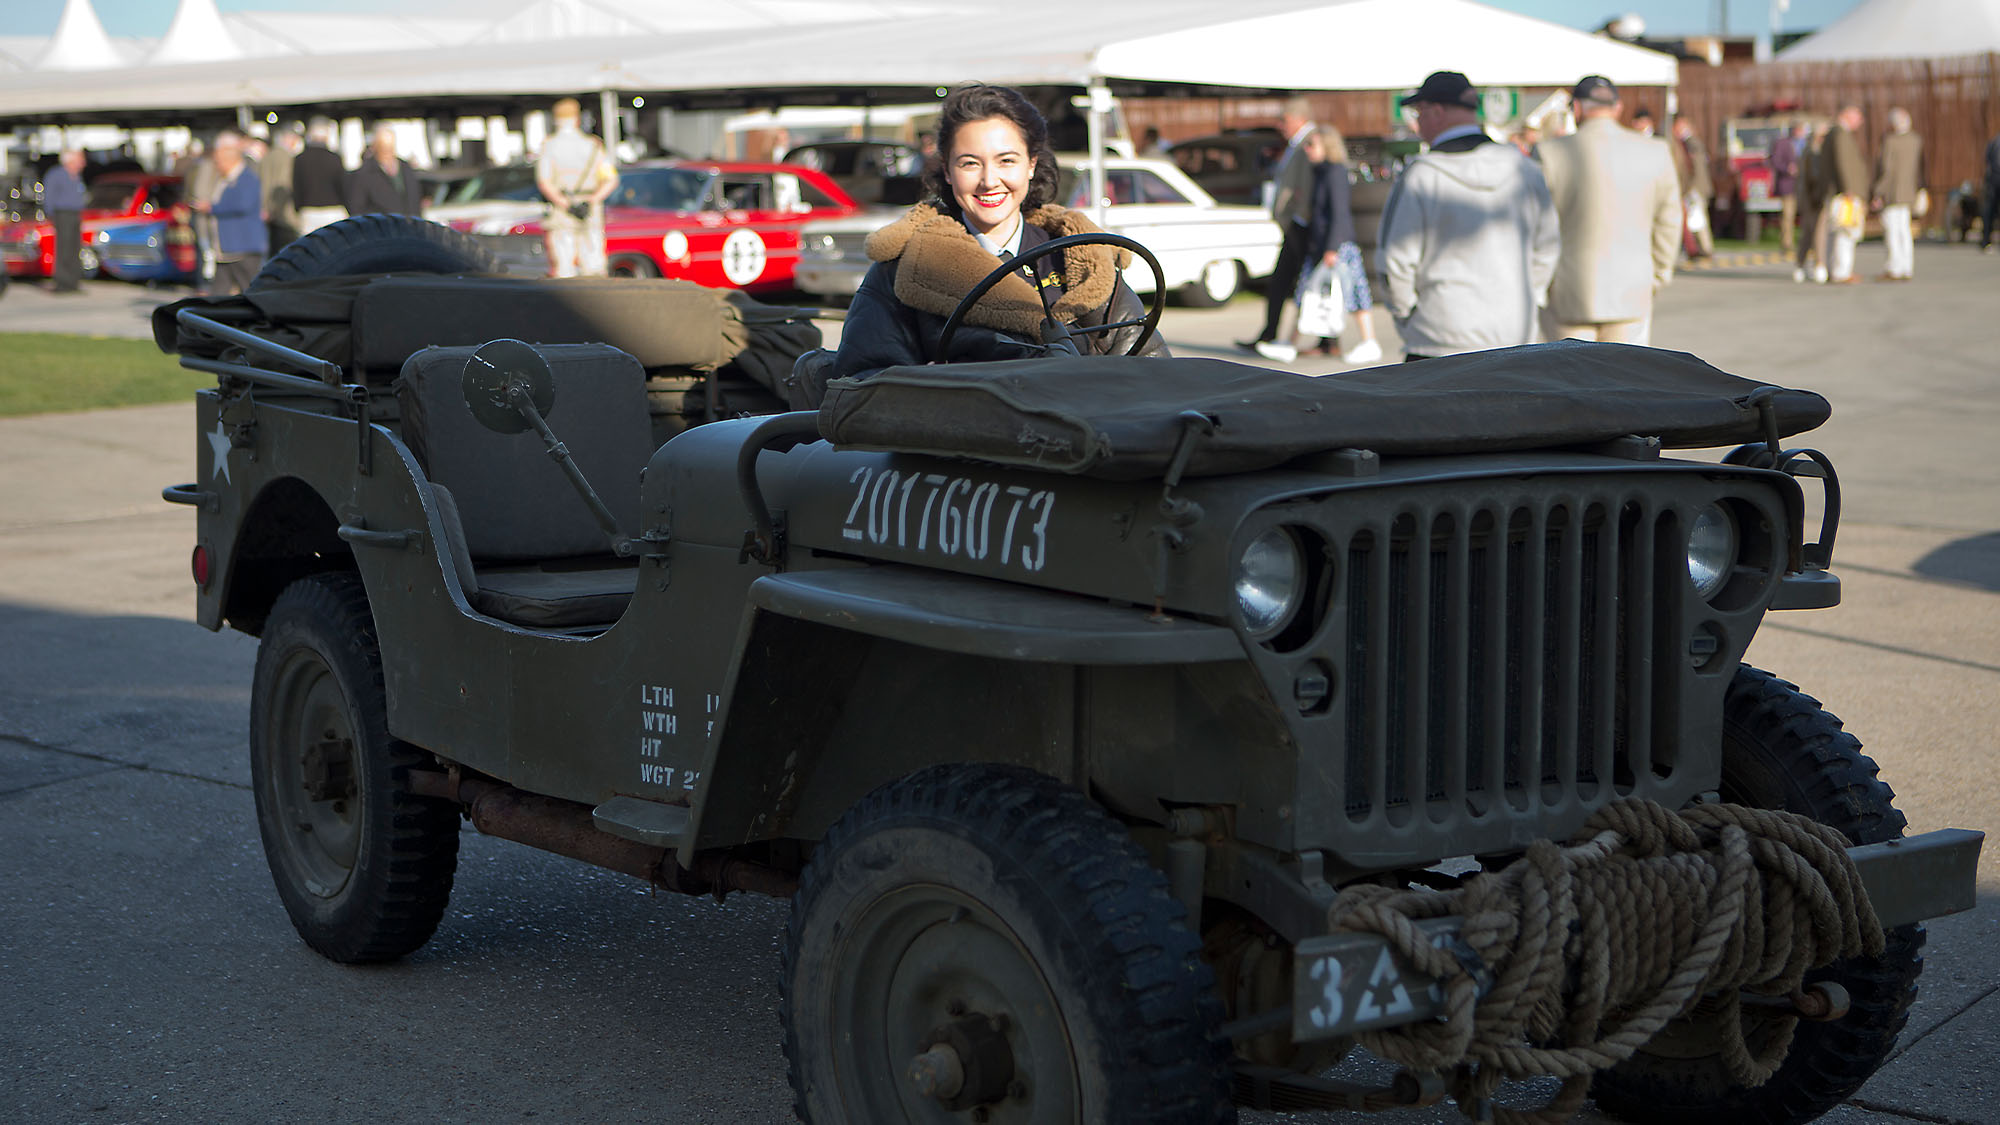 CHICHESTER, ENGLAND - SEPT 7th: Stylish young lady in fur lined flying jacket driving military vehicle/jeep during the 20th anniversary of the Goodwood Revival at Goodwood on September 7th 2018 in Chichester, England. (Photo by Michael Cole/Getty Images)